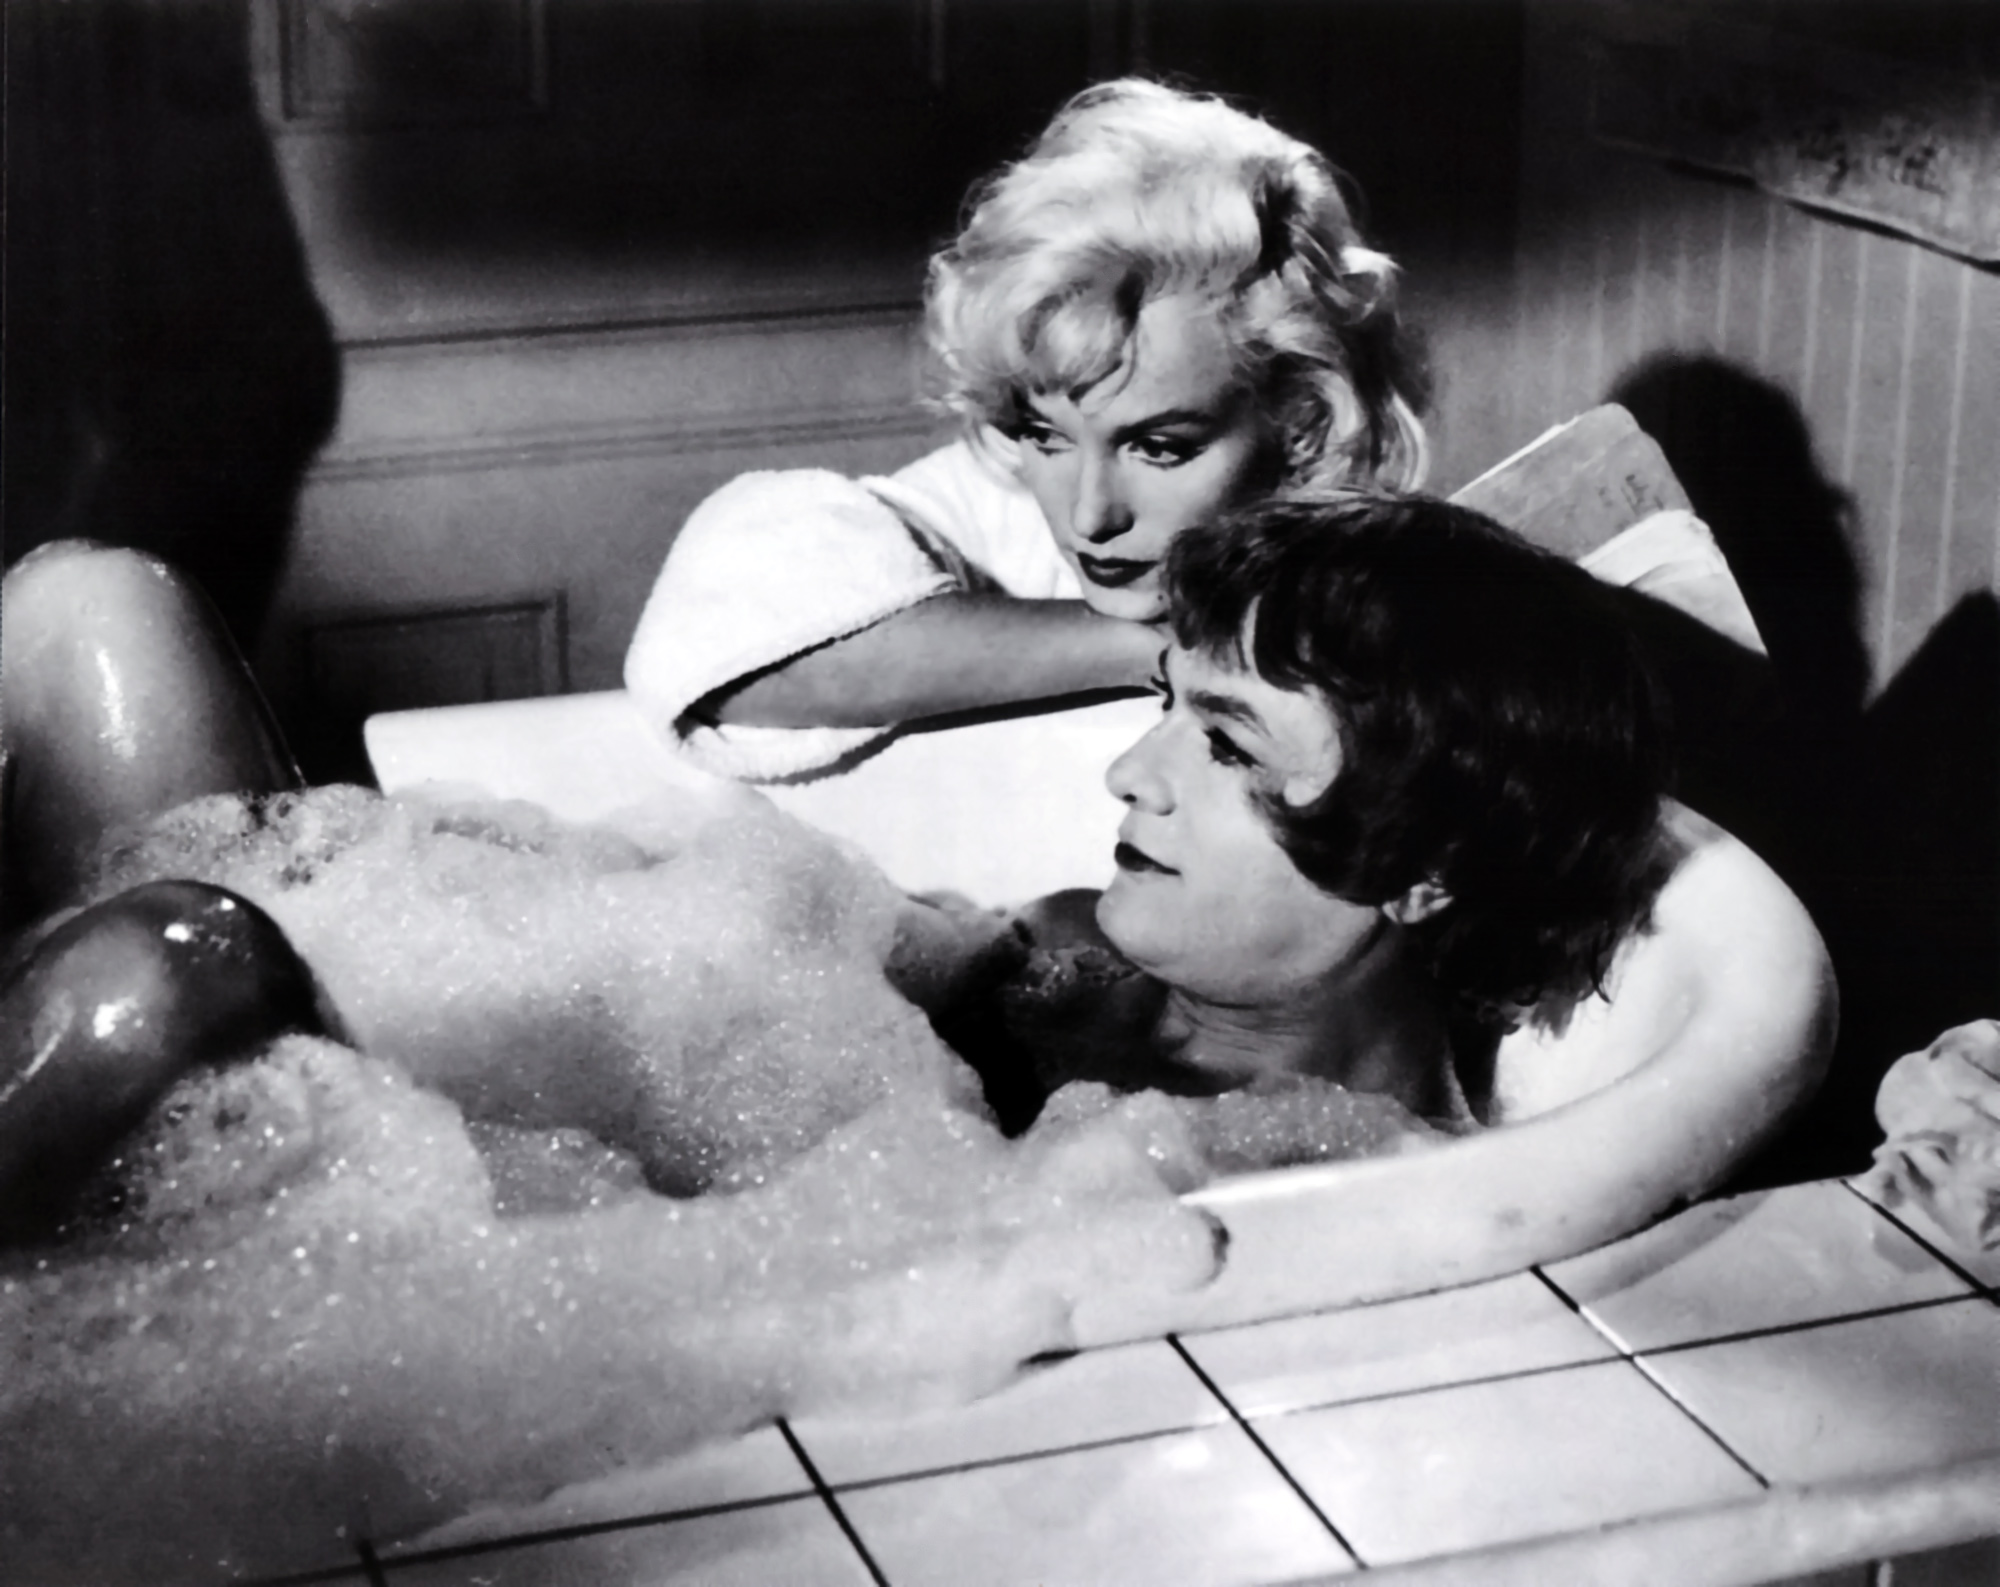 Tony Curtis with Marilyn Monroe